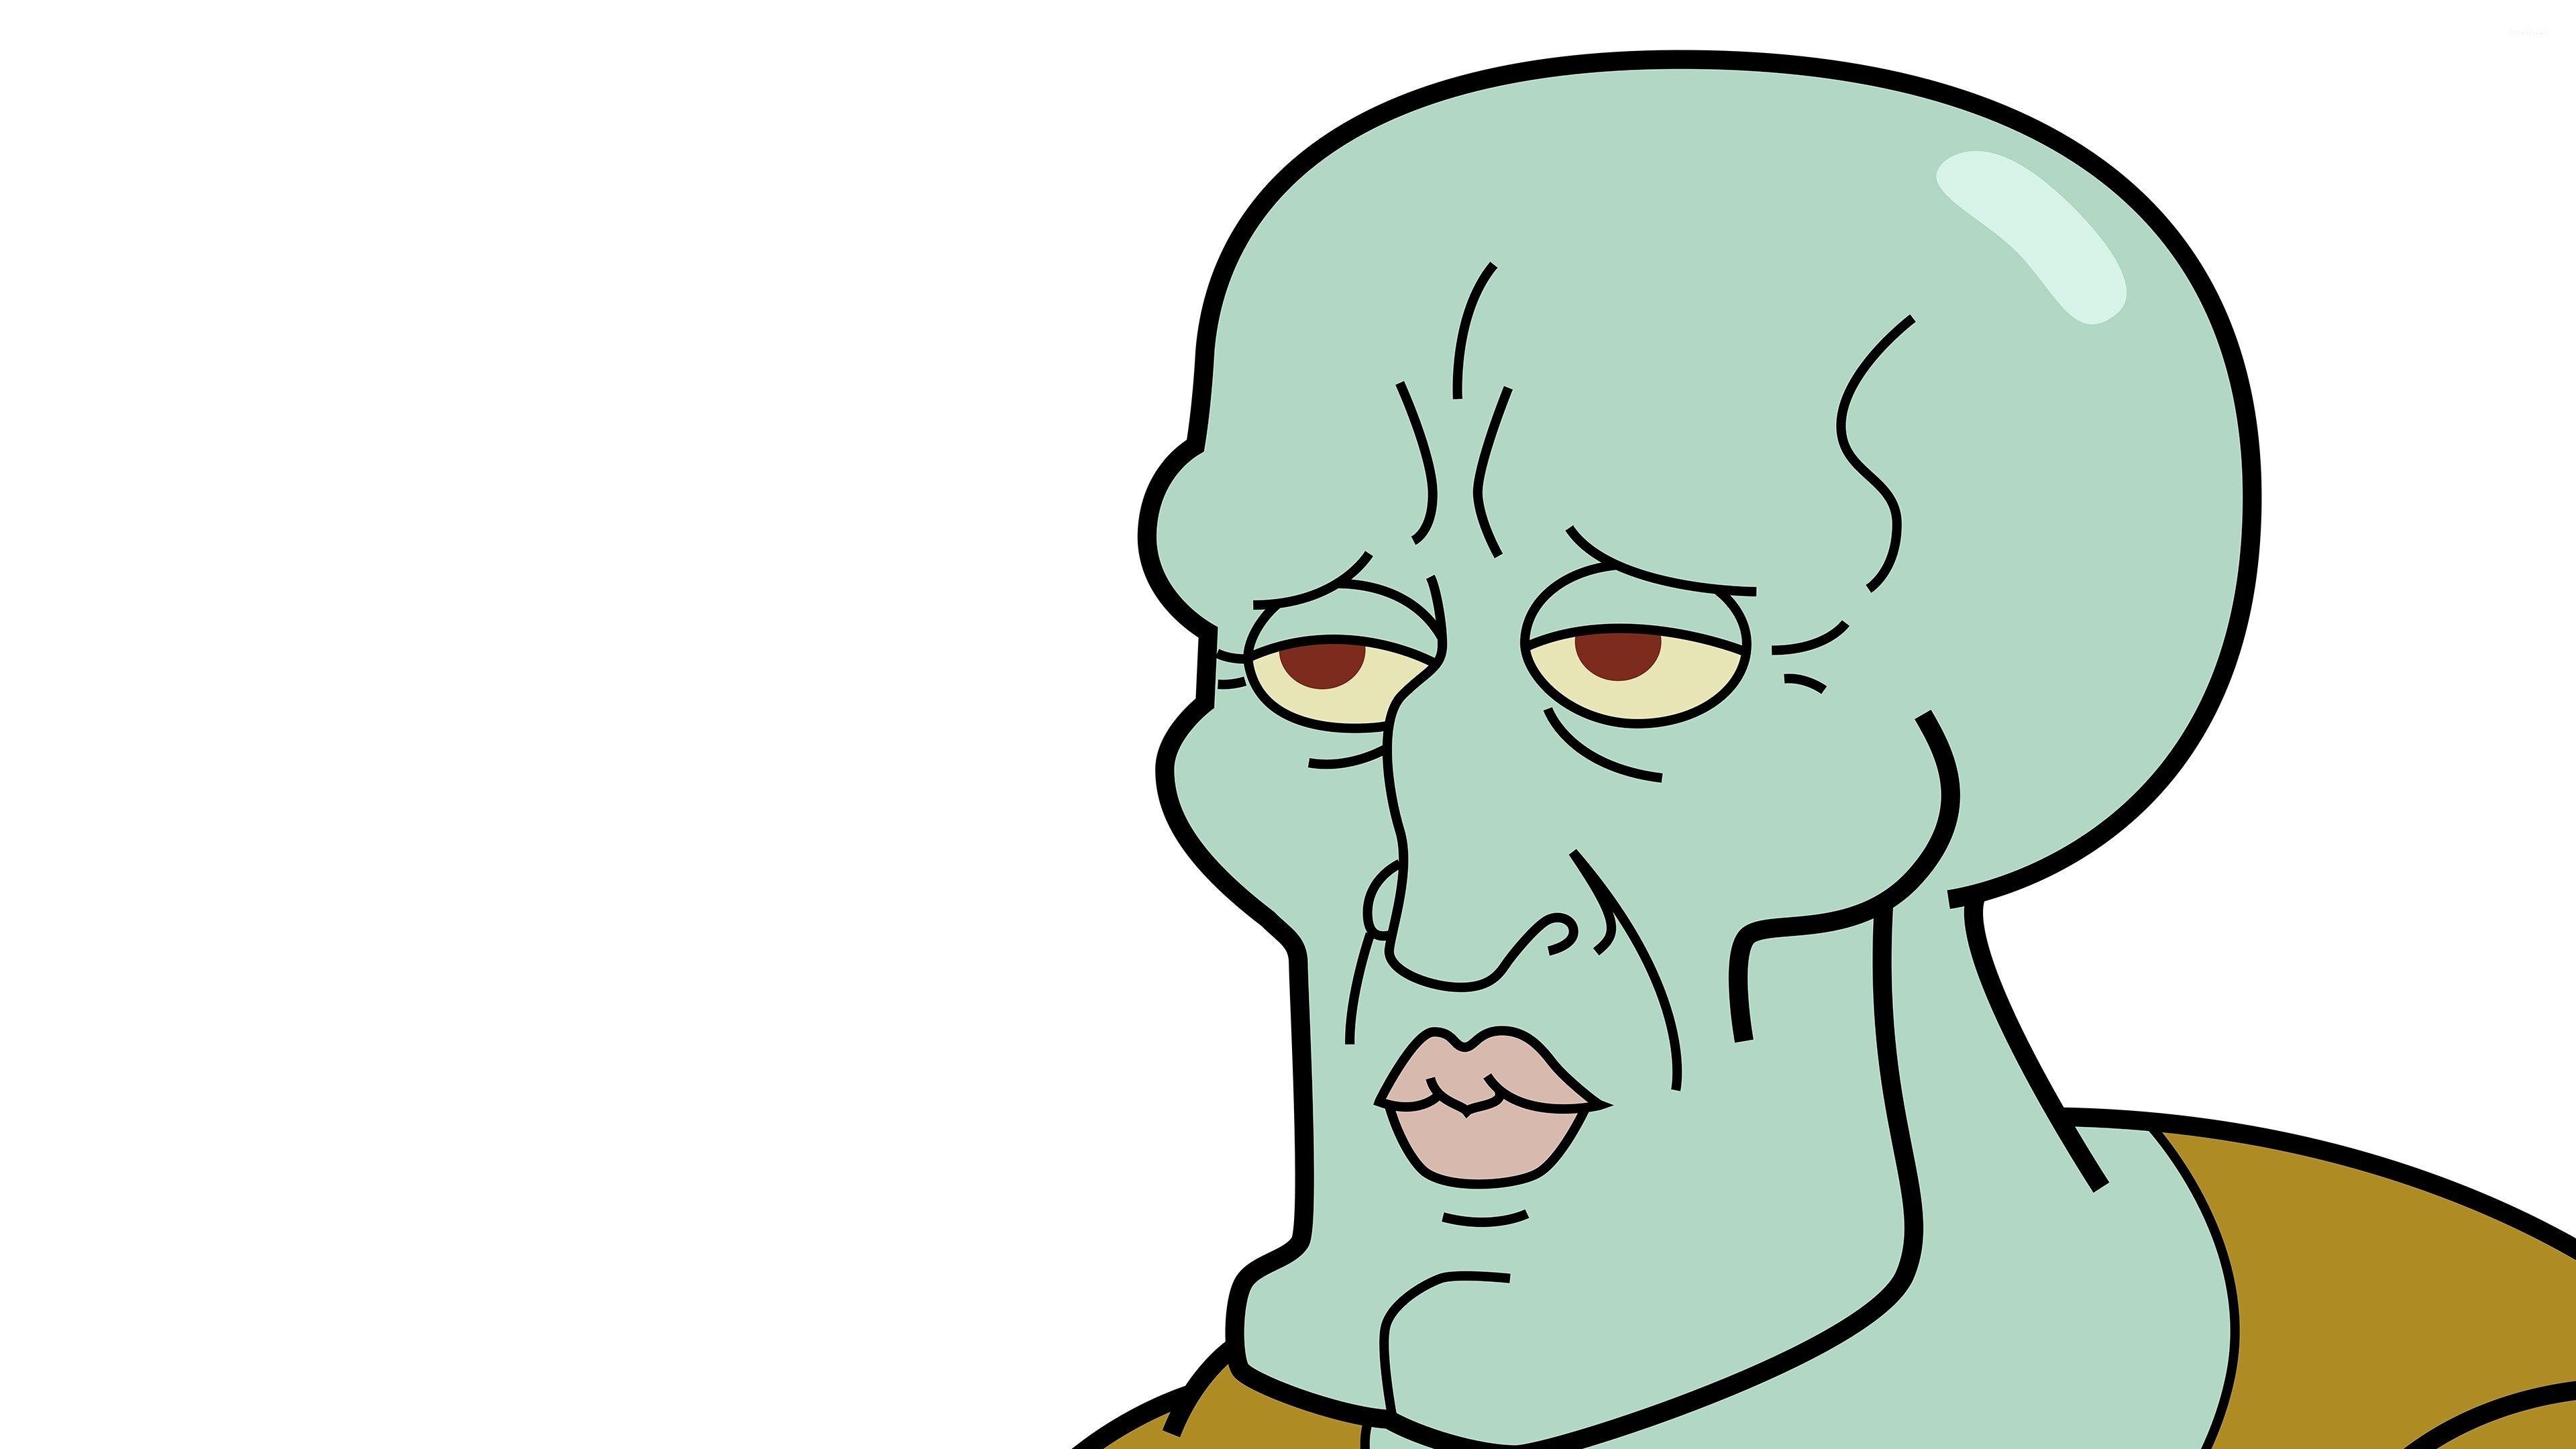 Res: 3840x2160, Handsome Squidward wallpaper